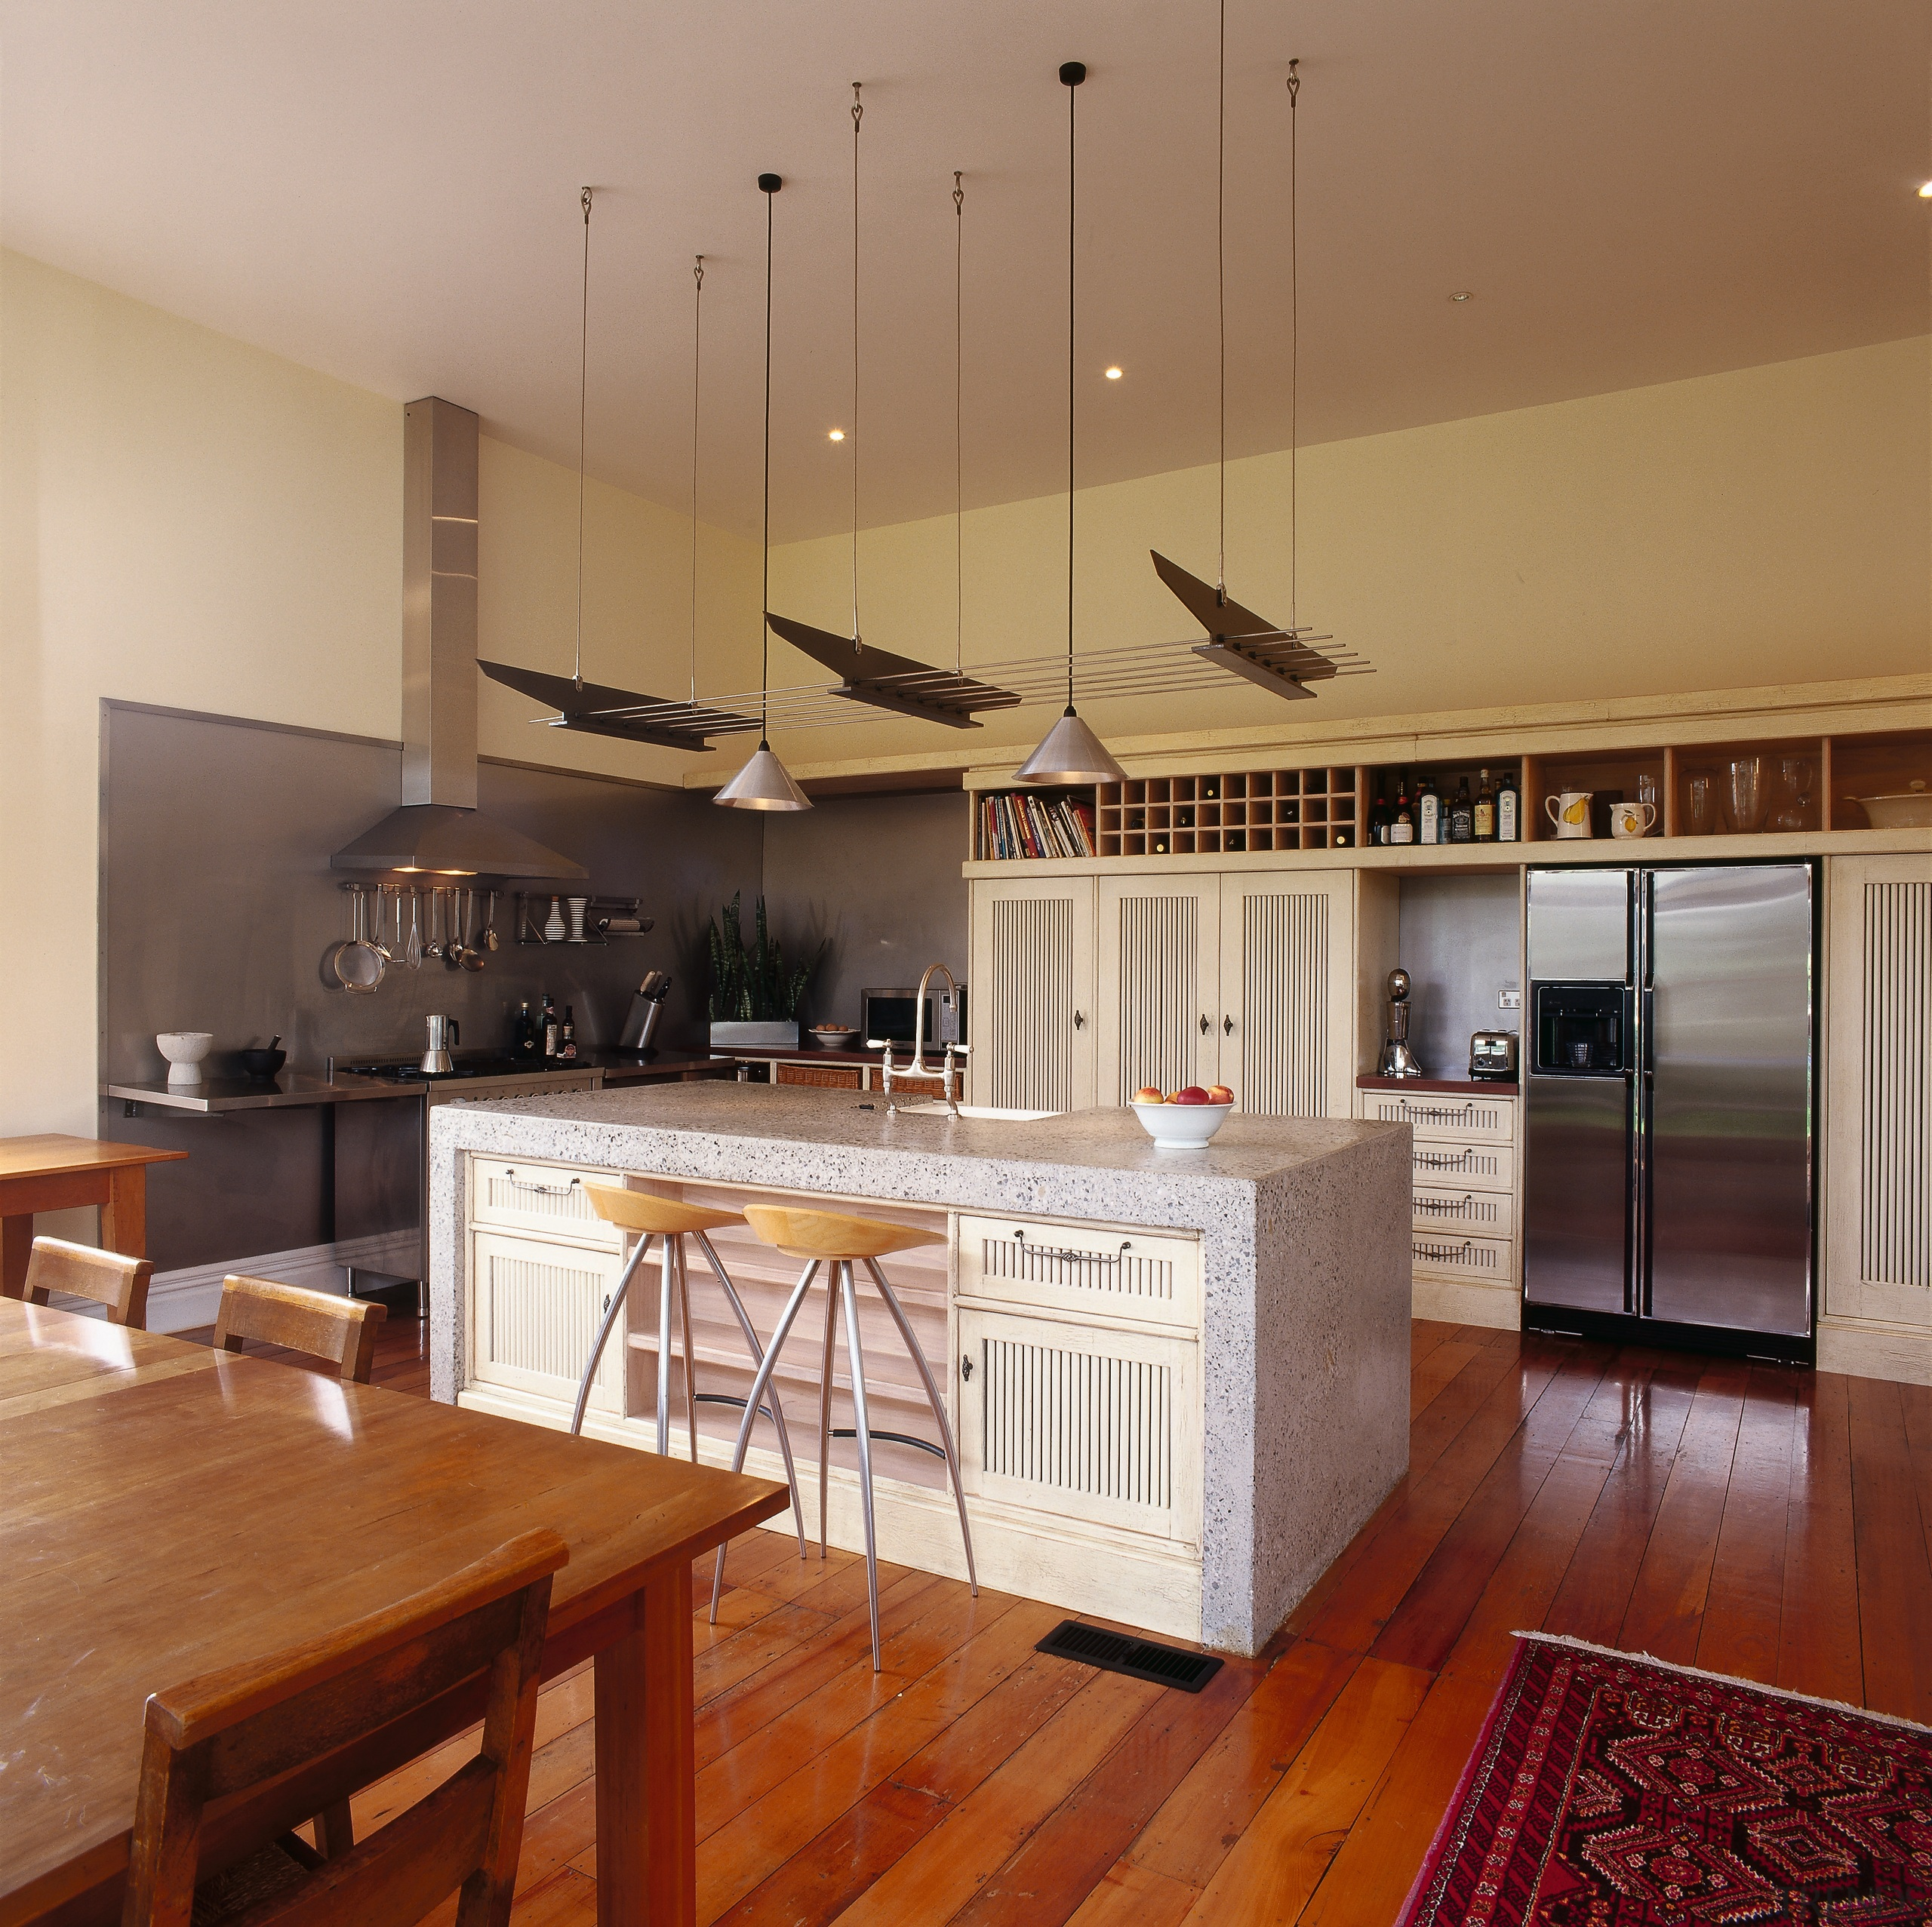 The view of a rural styled kitchen - cabinetry, ceiling, countertop, cuisine classique, floor, flooring, hardwood, interior design, kitchen, laminate flooring, real estate, room, wood flooring, brown